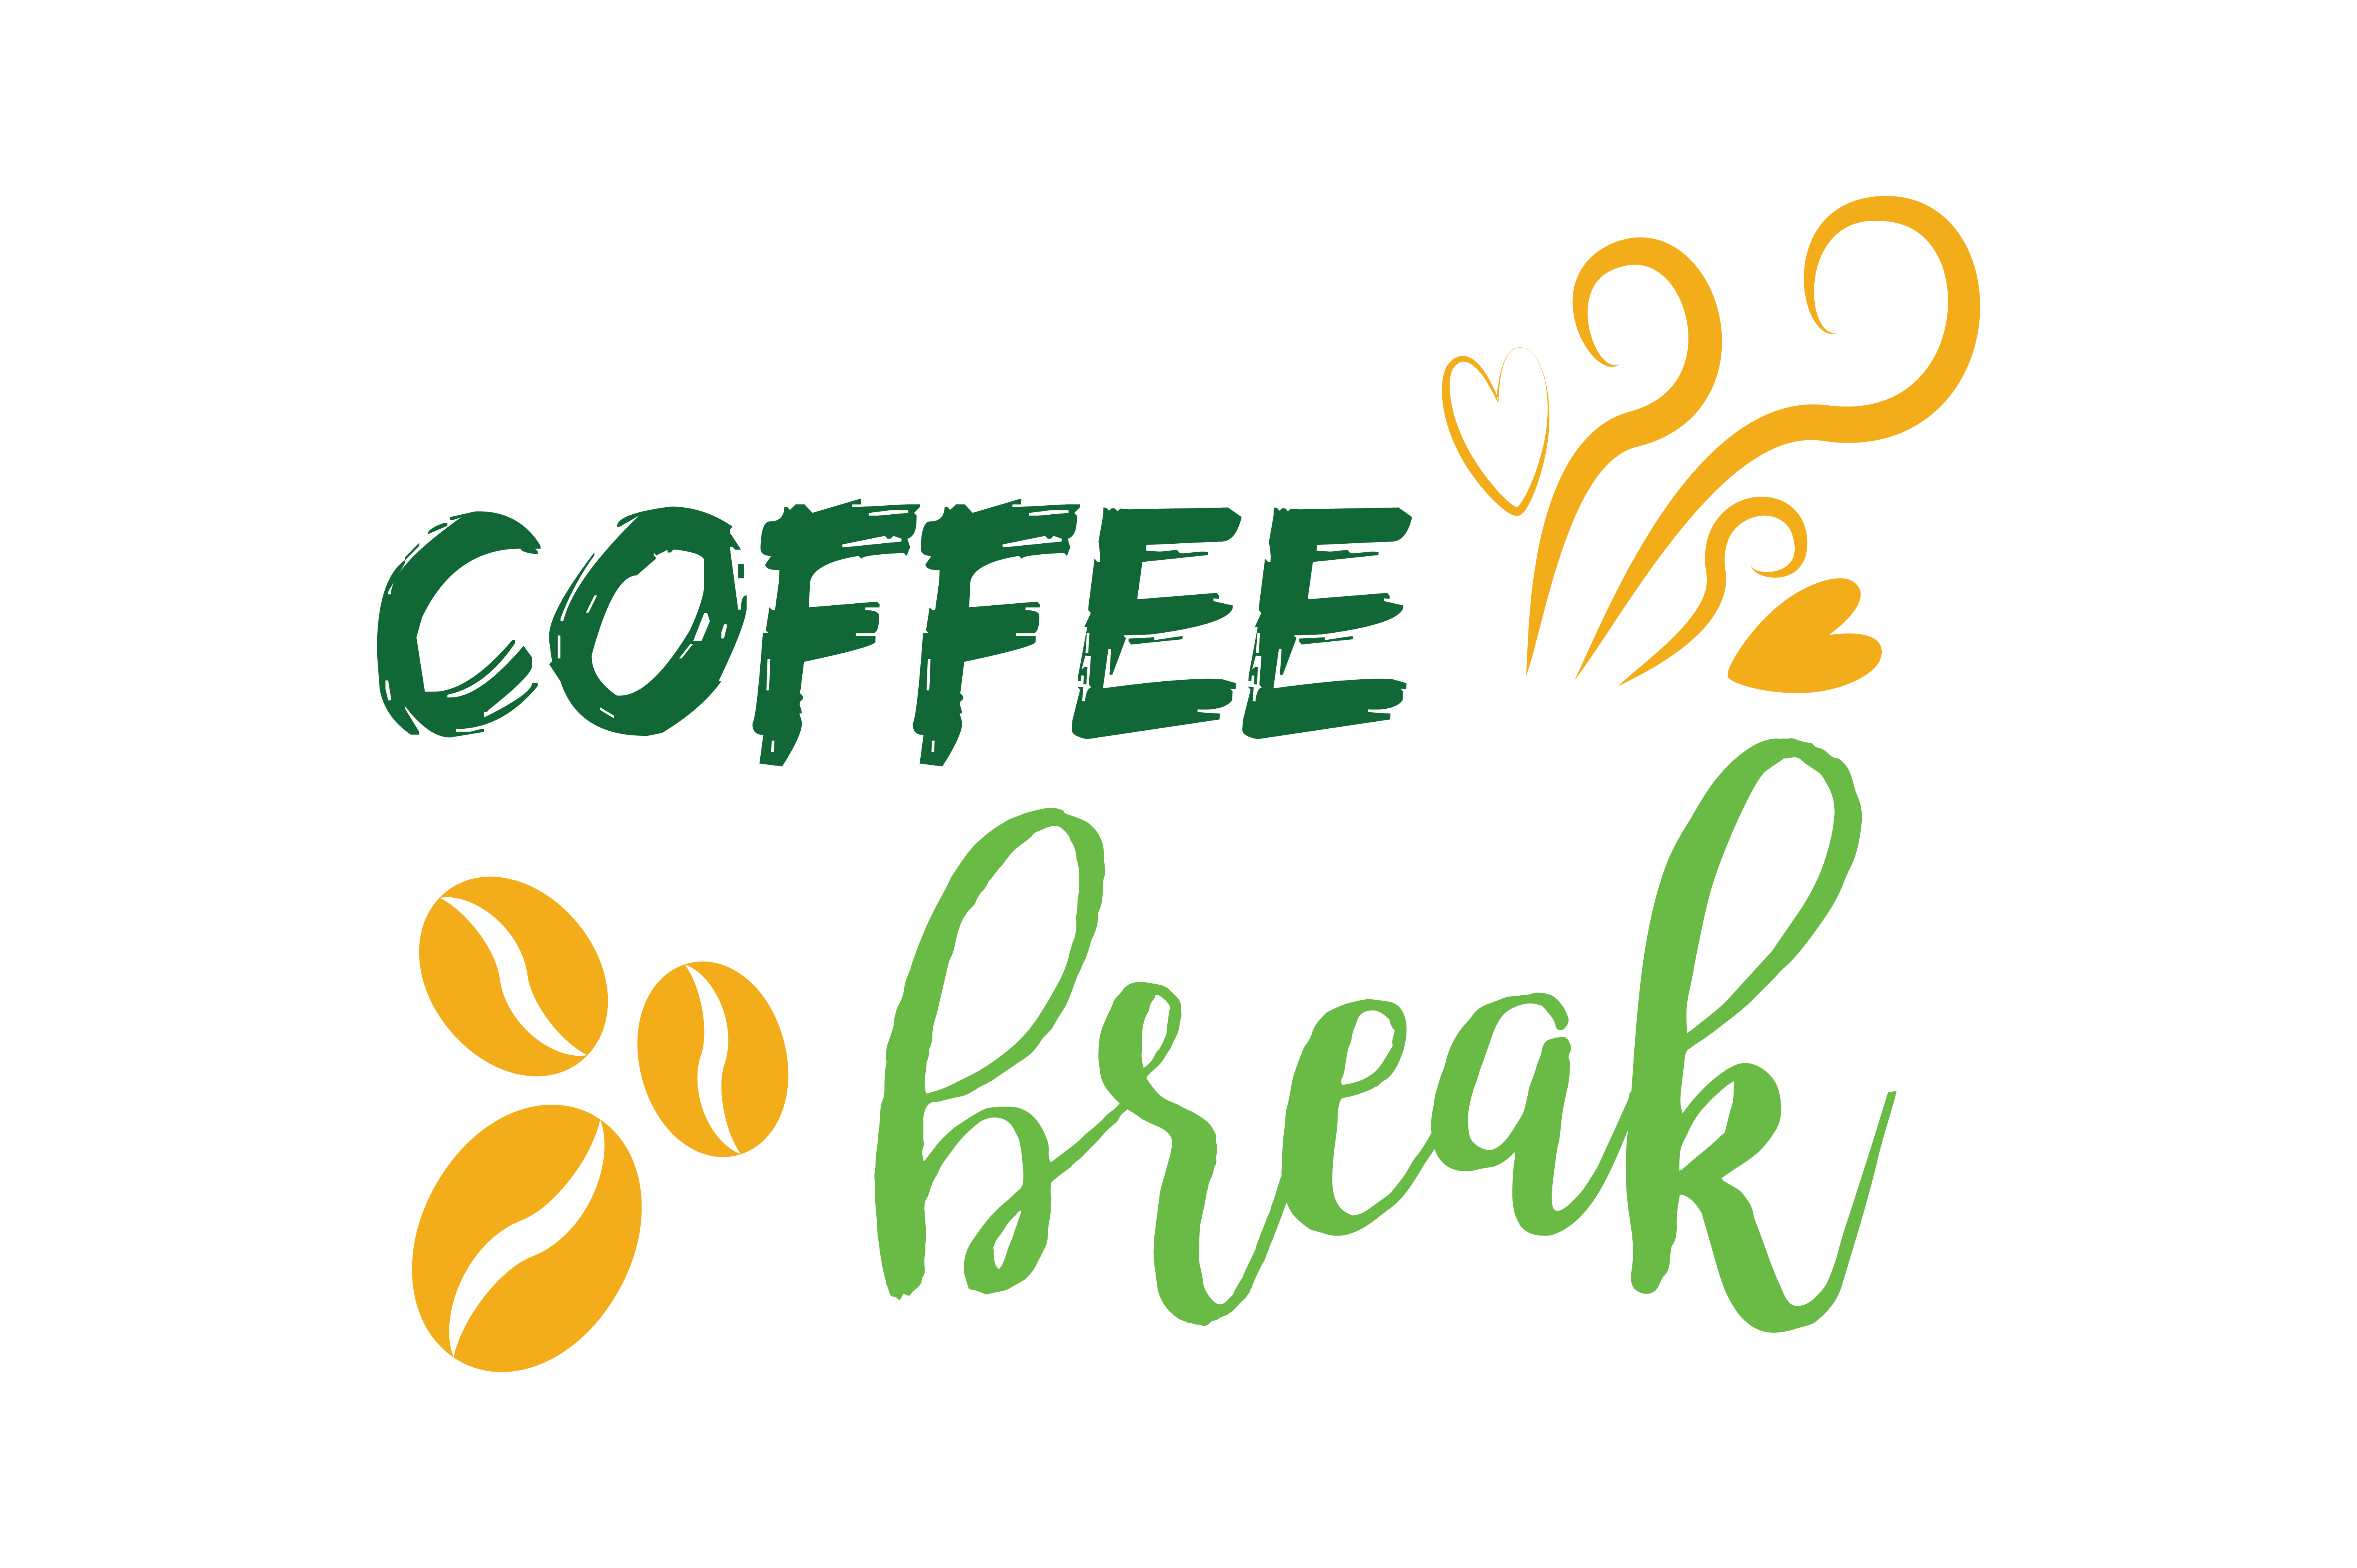 Download Free Coffee Break Quote Svg Cut Graphic By Thelucky Creative Fabrica for Cricut Explore, Silhouette and other cutting machines.